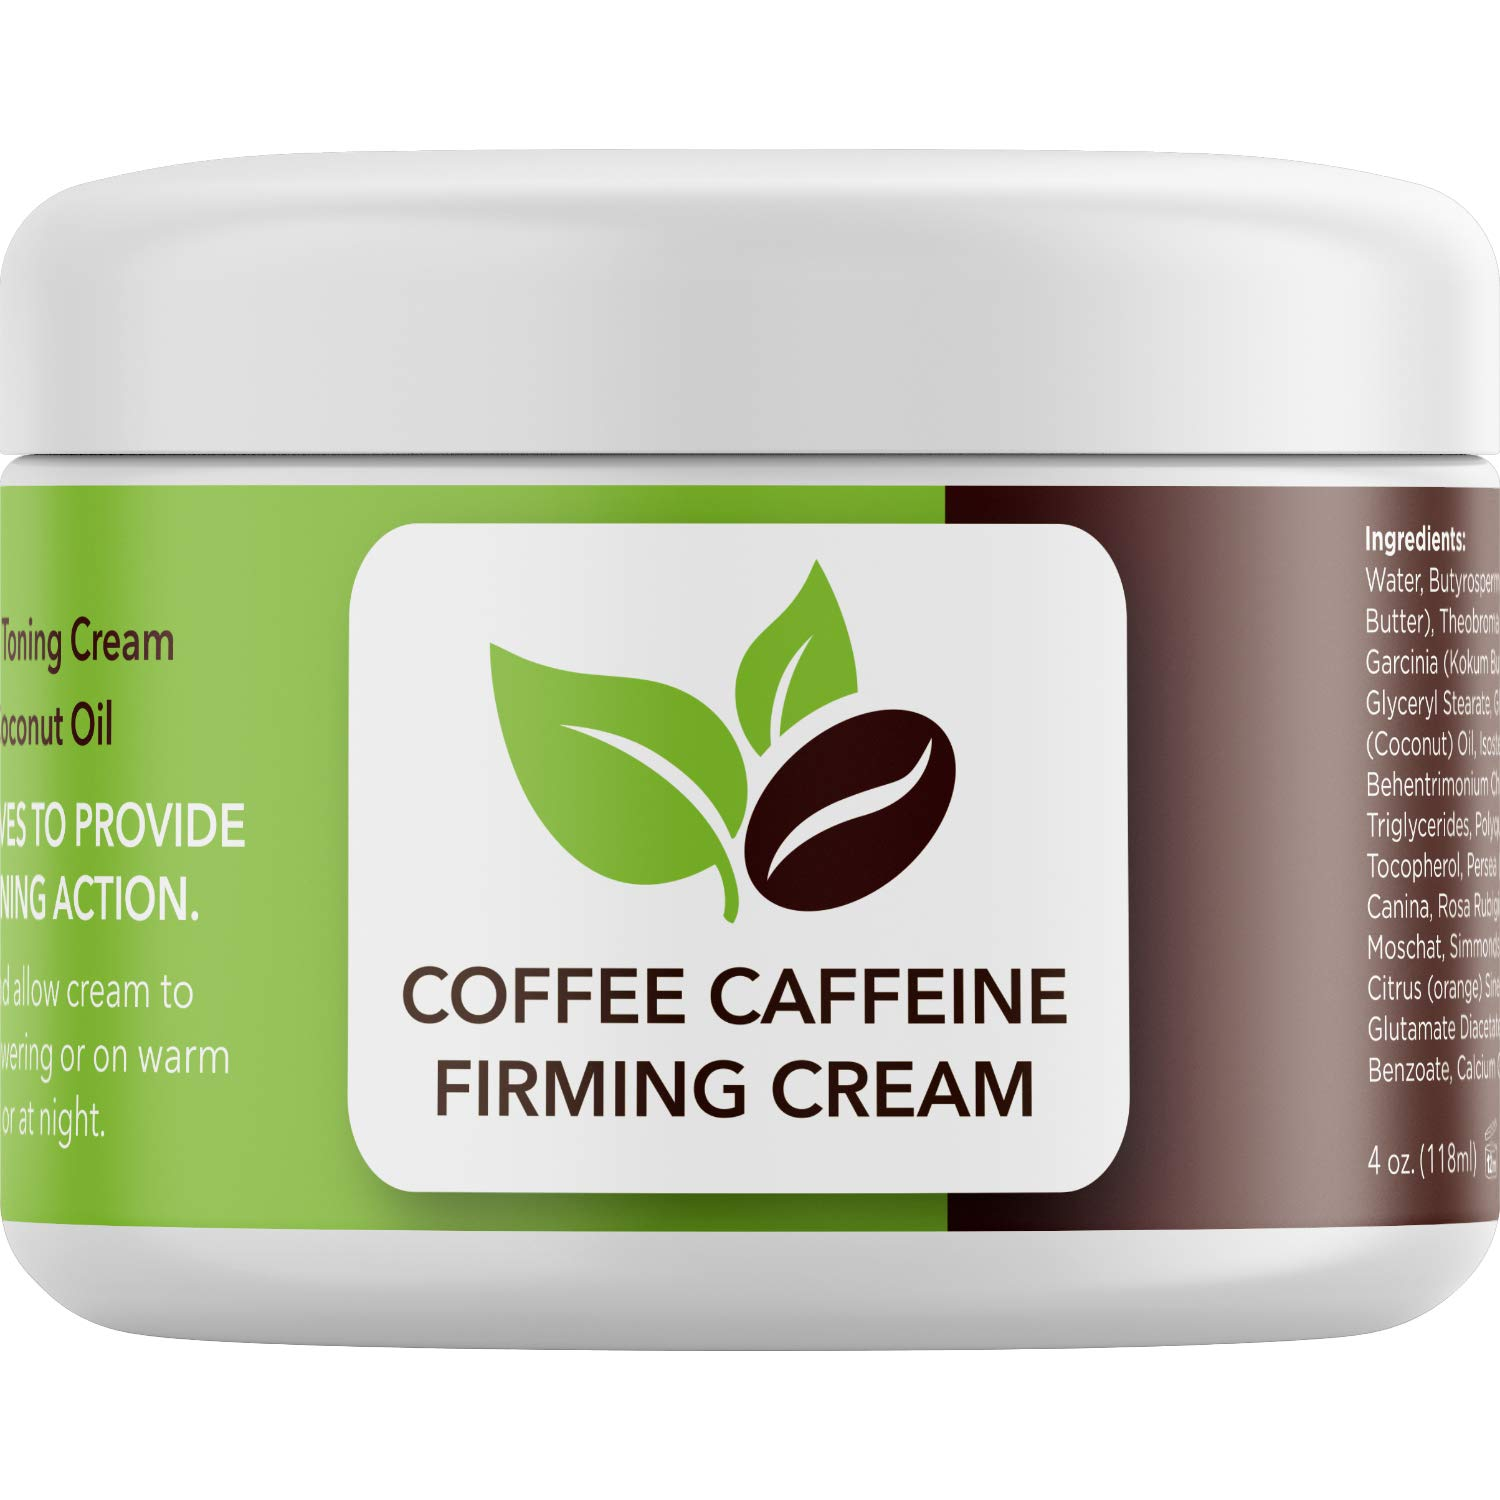 Rich Coconut Coffee Body Cream - Concealing Cellulite Cream and Hydrating Body Moisturizer for Dry Skin with Shea Butter - Whipped Body Butter and Caffeine Eye Cream for Anti Aging Skin Care